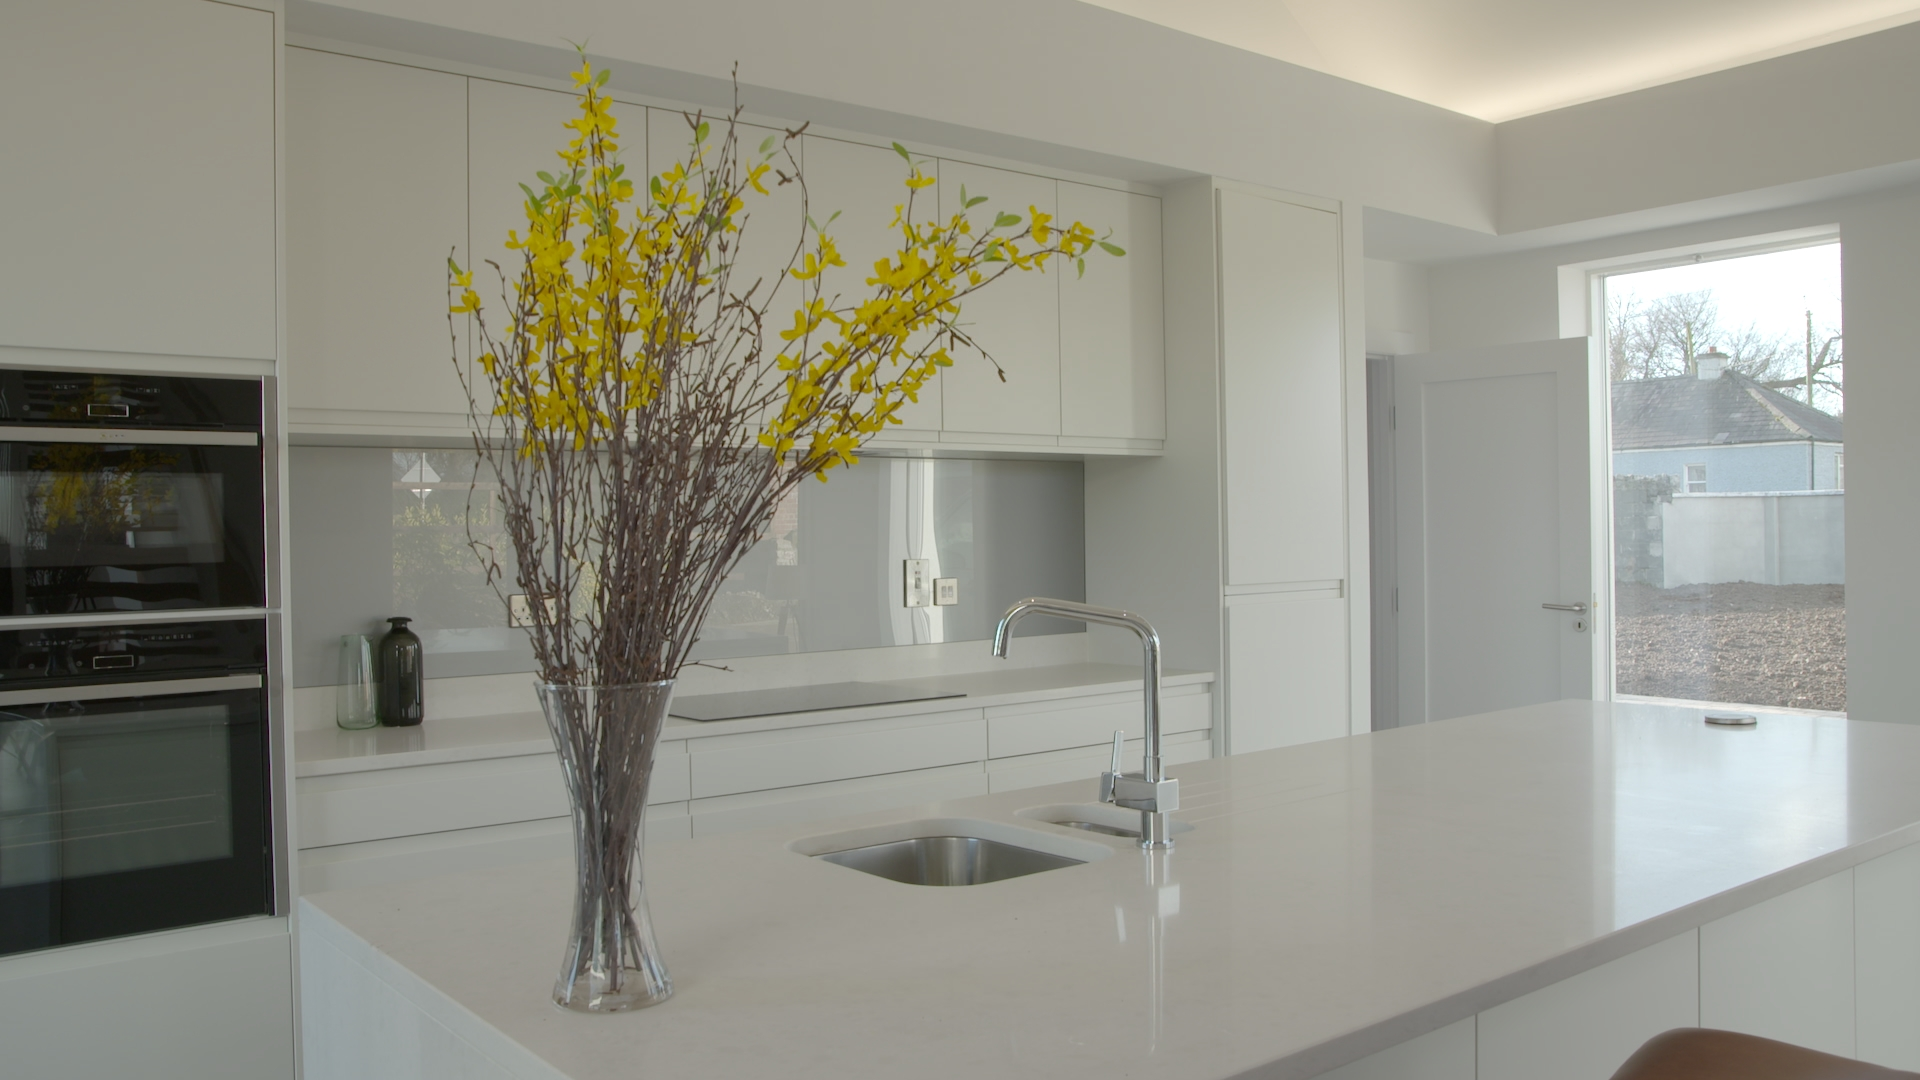 TX3 RTI10 Moate AFTER Kitchen 2 - Copy.jpg